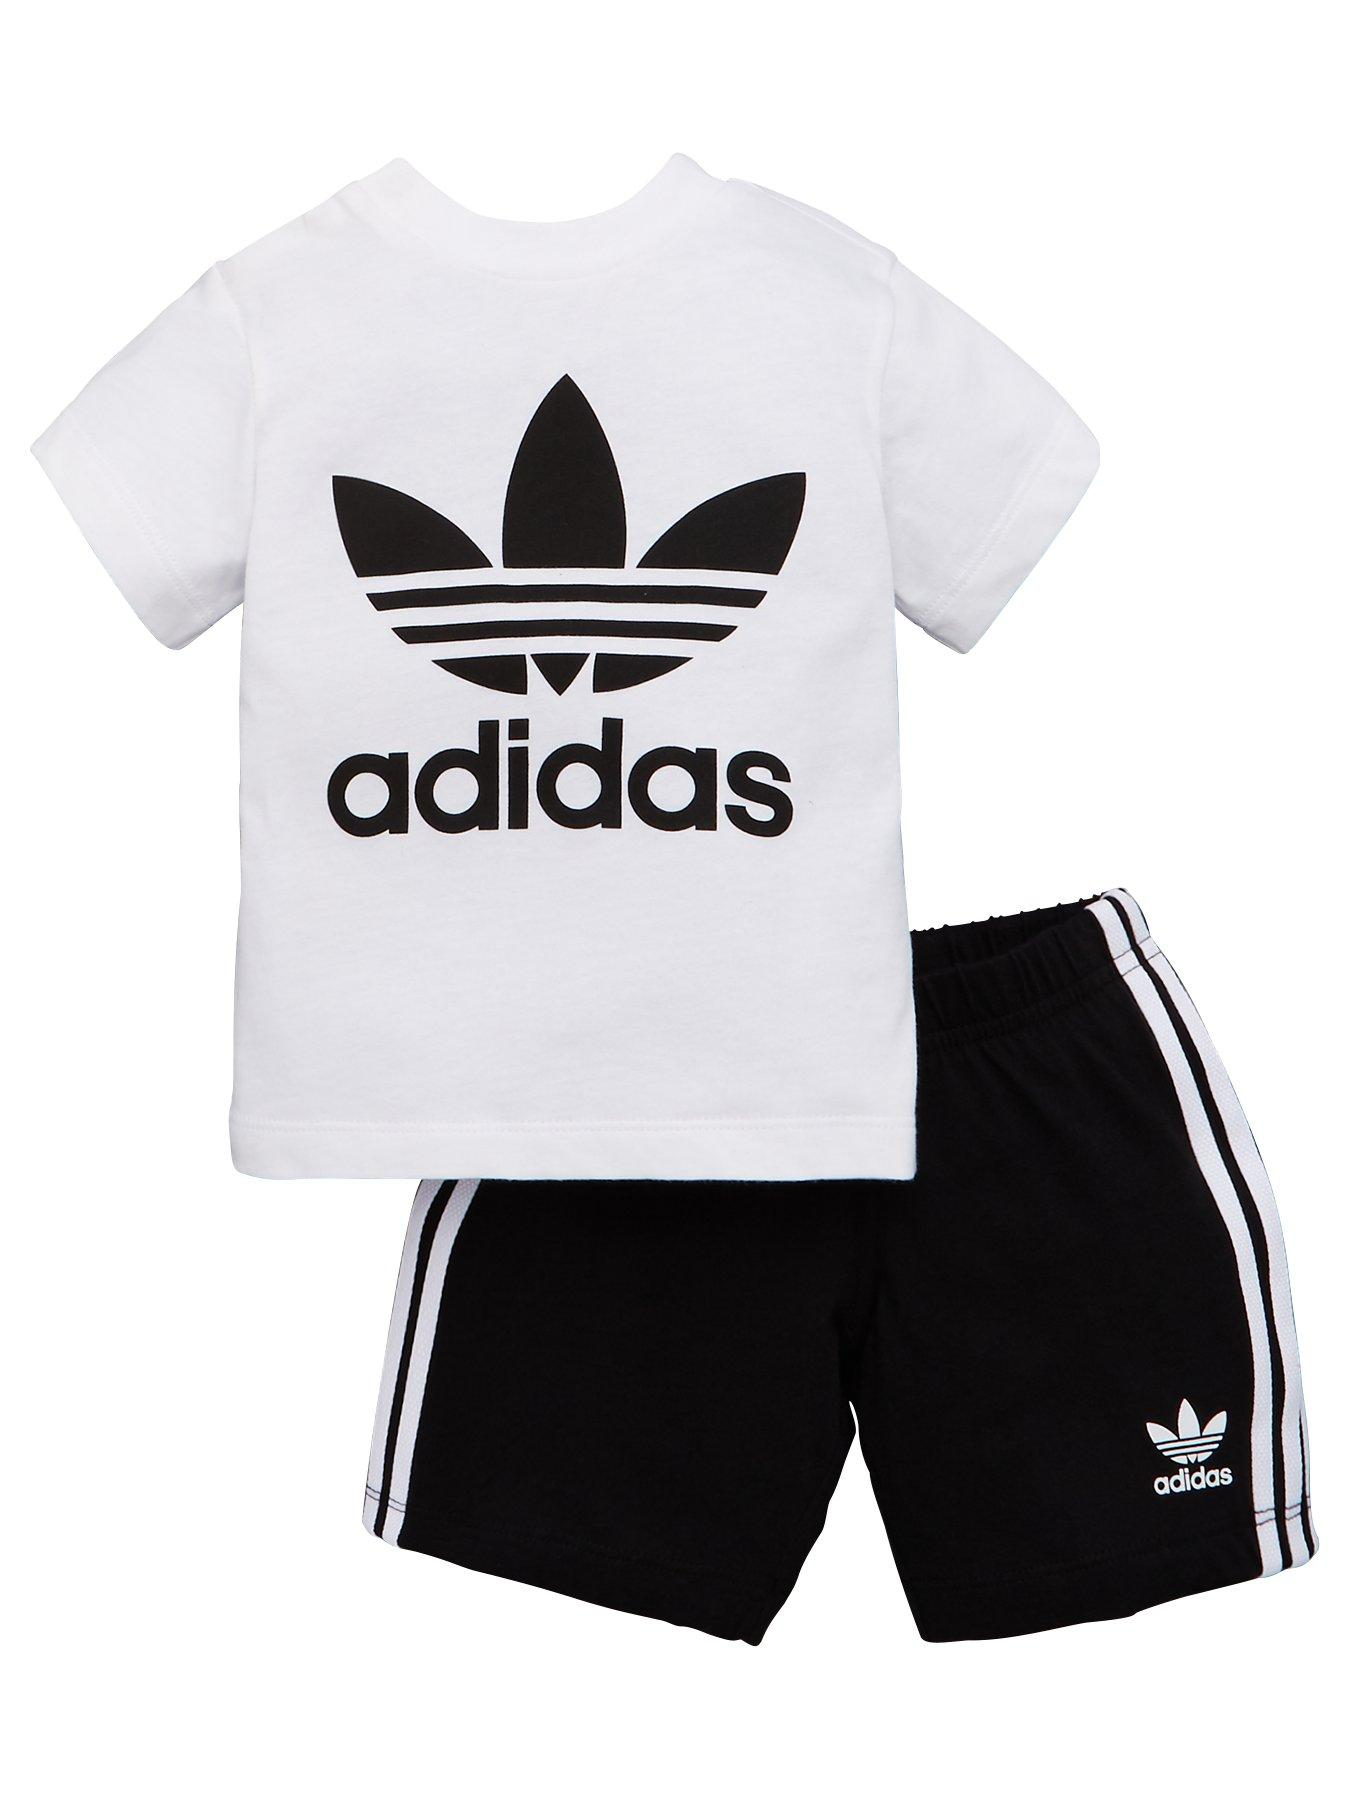 adidas baby boys active set sizes 12 18 months